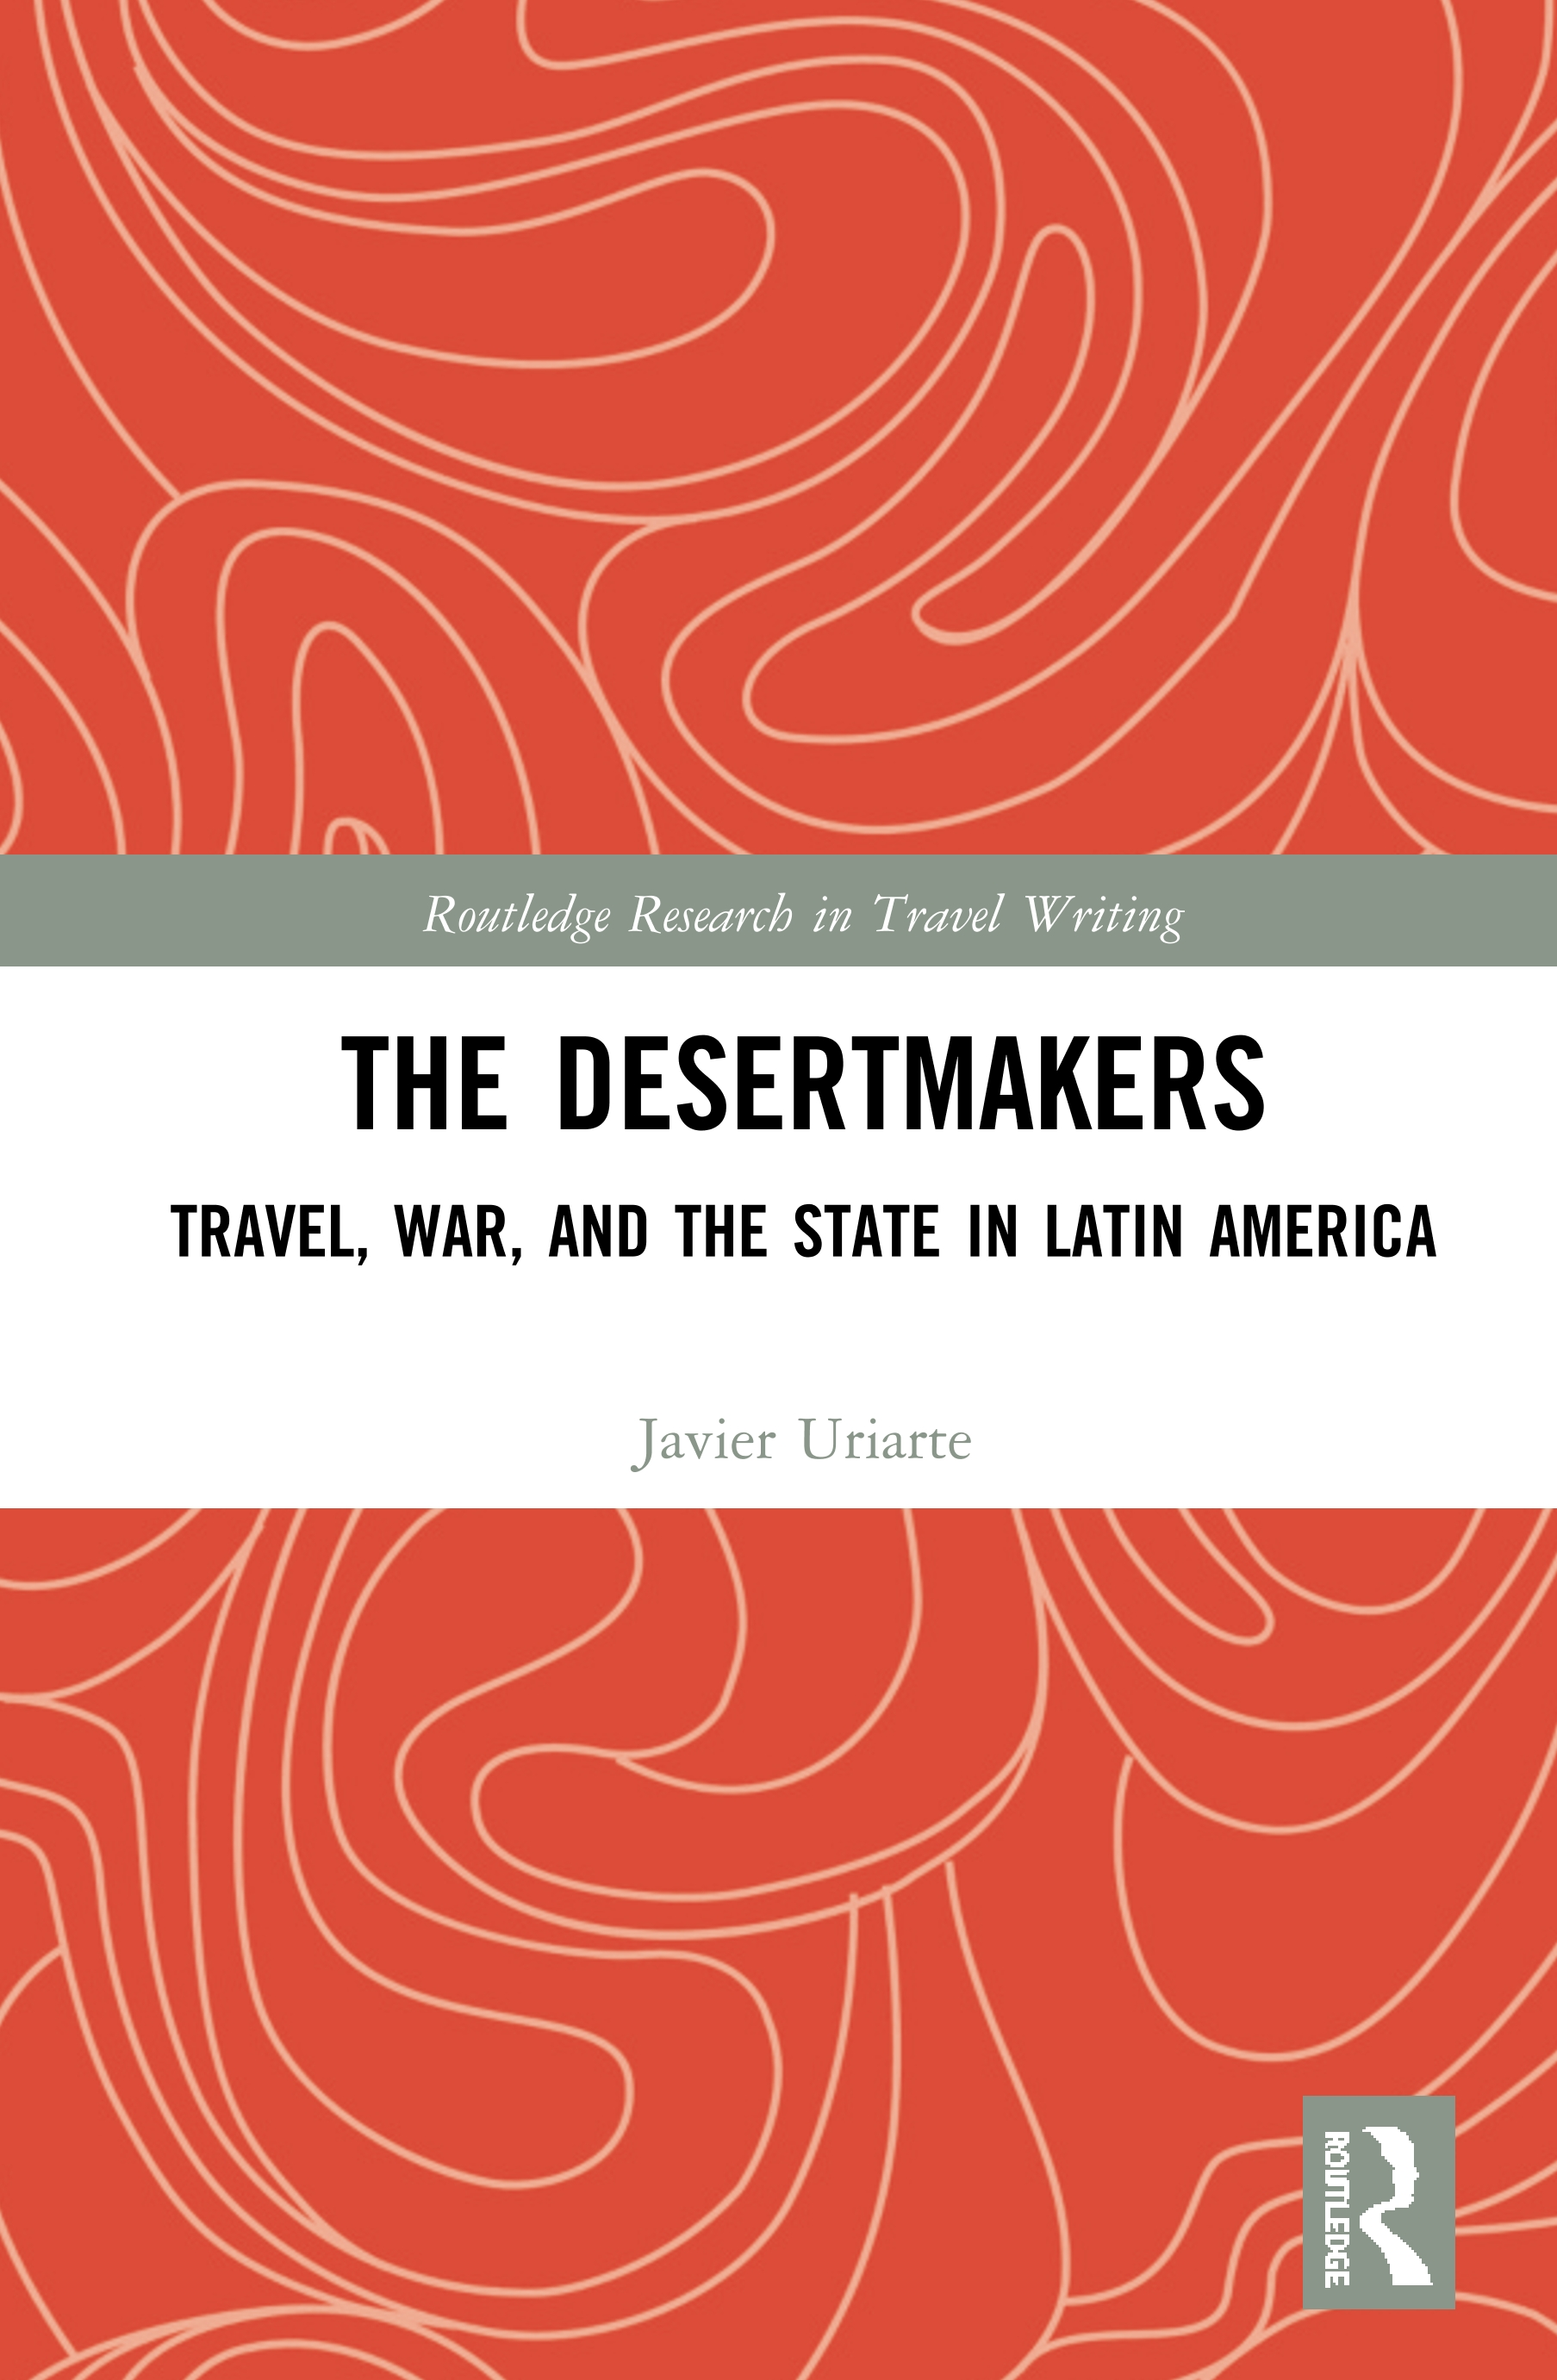 The Desertmakers: Travel, War, and the State in Latin America book cover